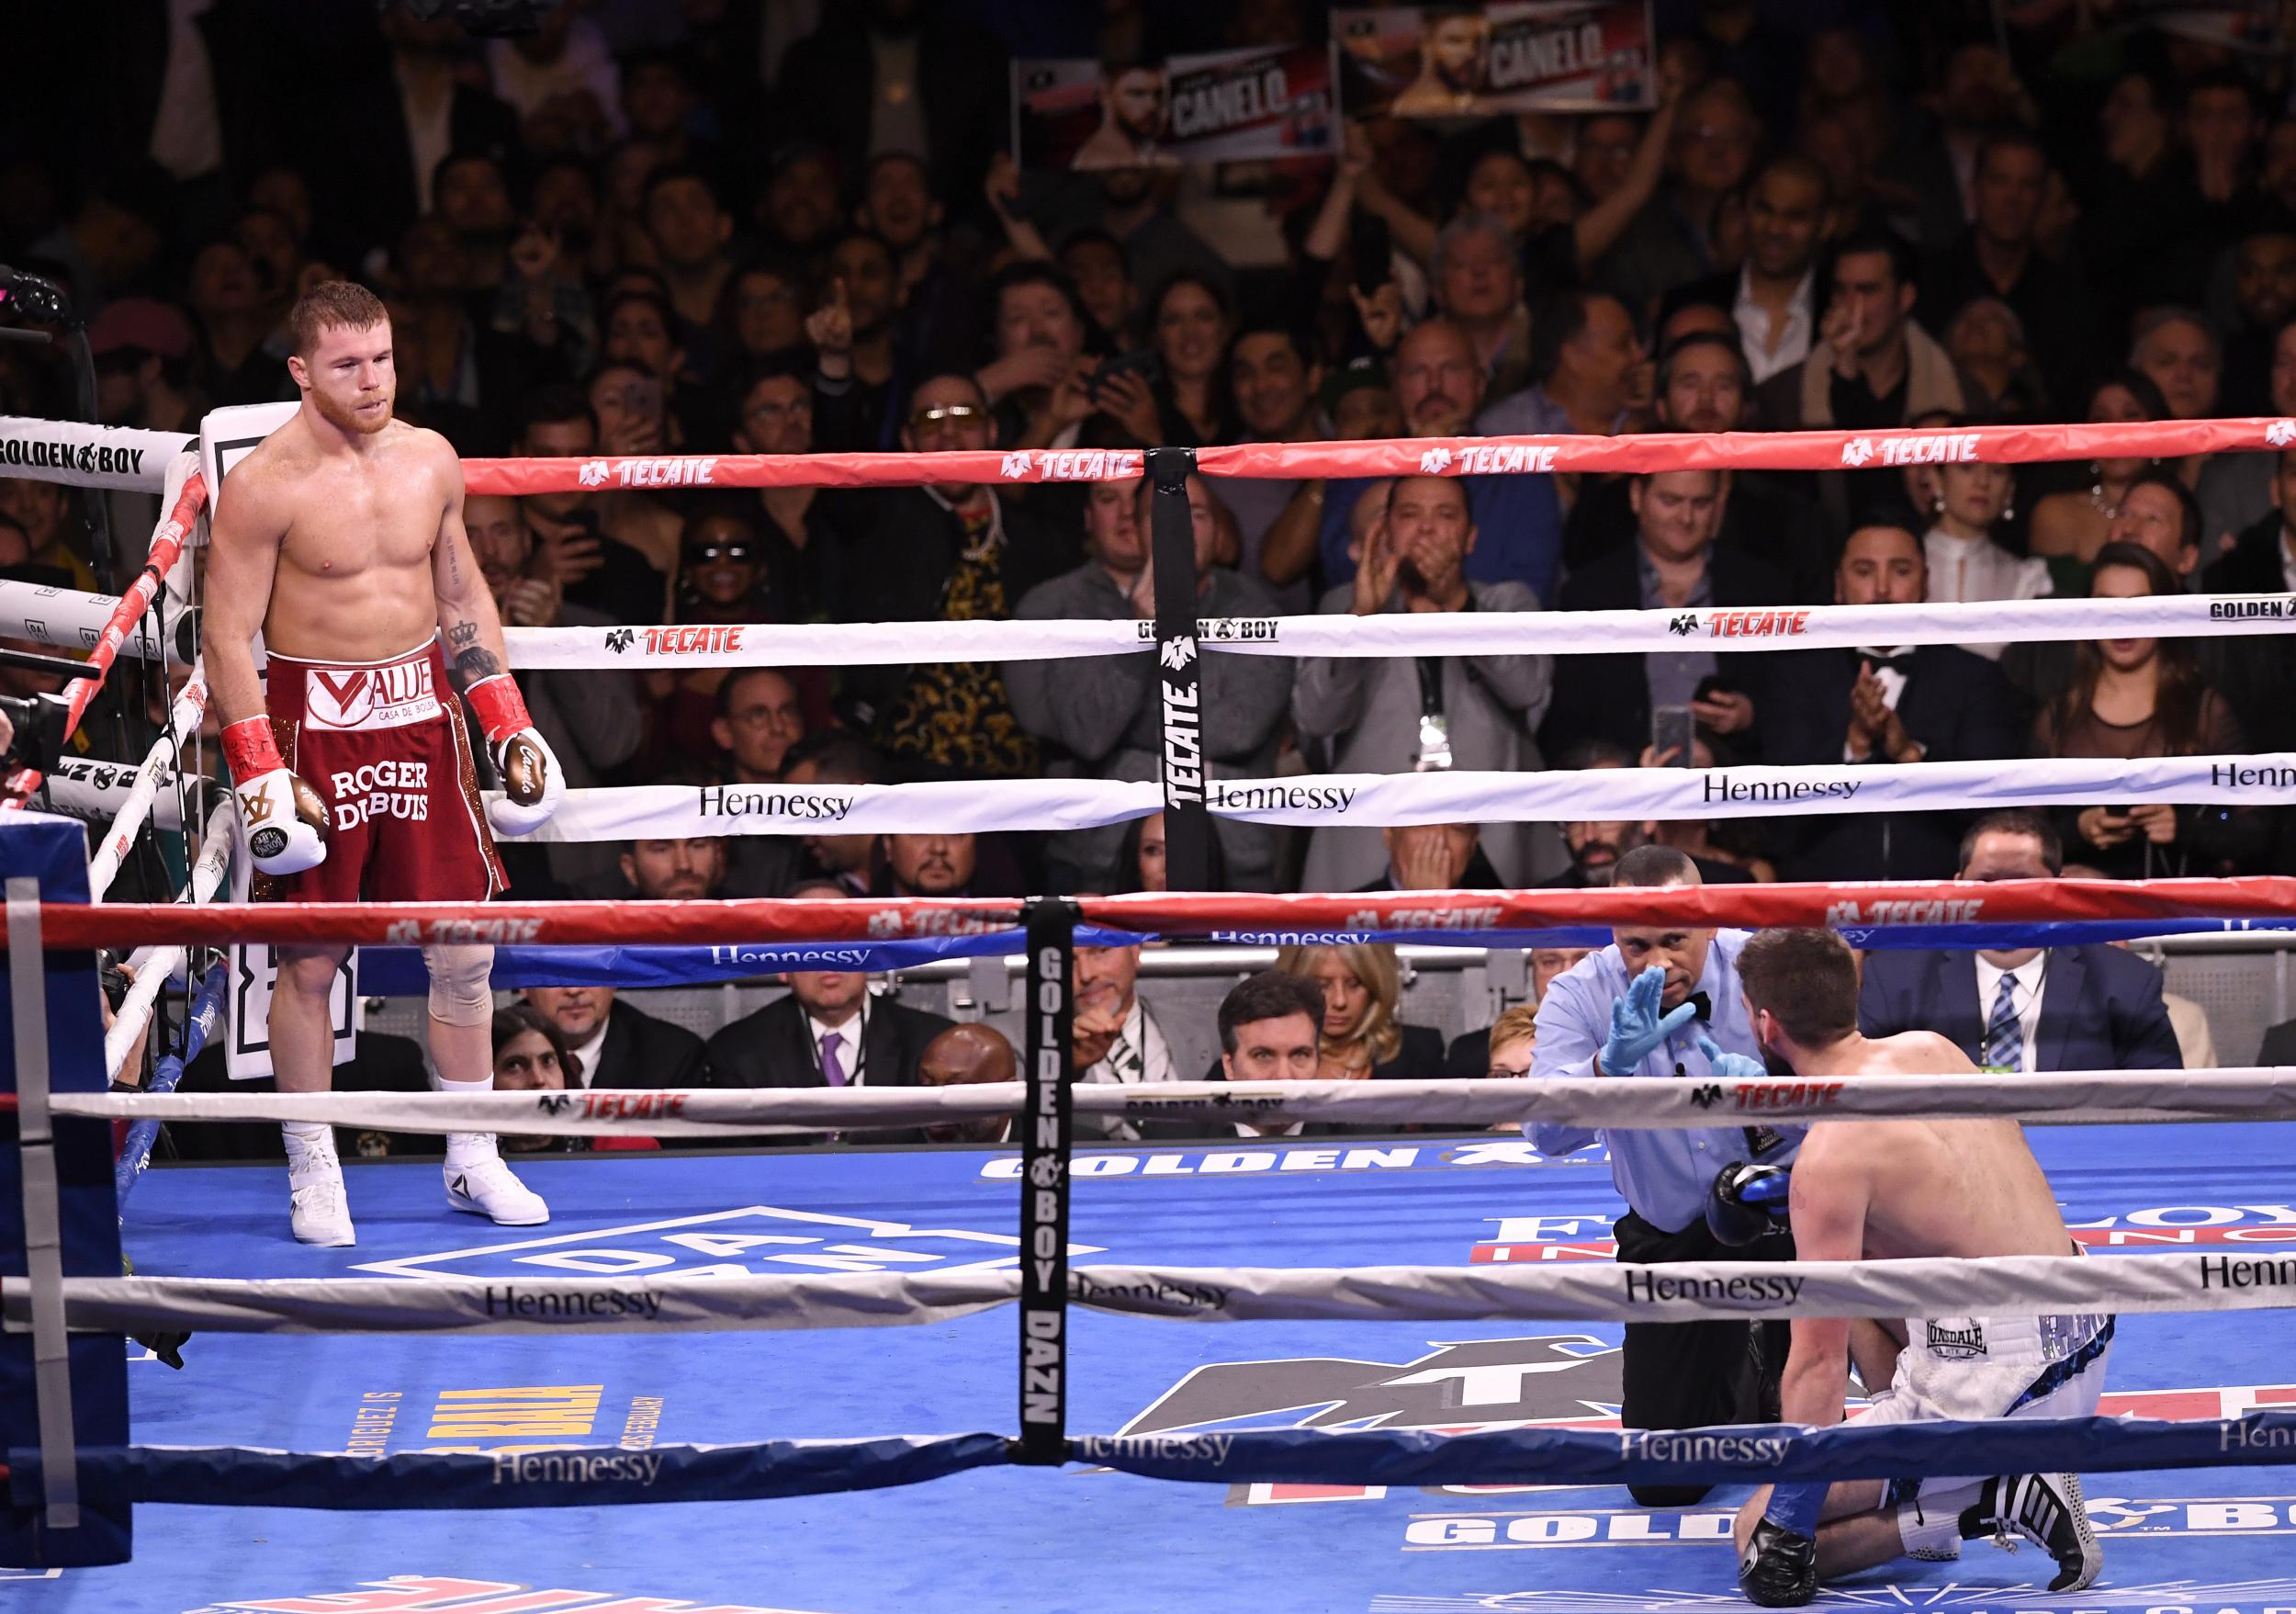 Canelo Alvarez claims he 'knew the weakness' of Rocky Fielding as he delivers third round TKO to win WBA title